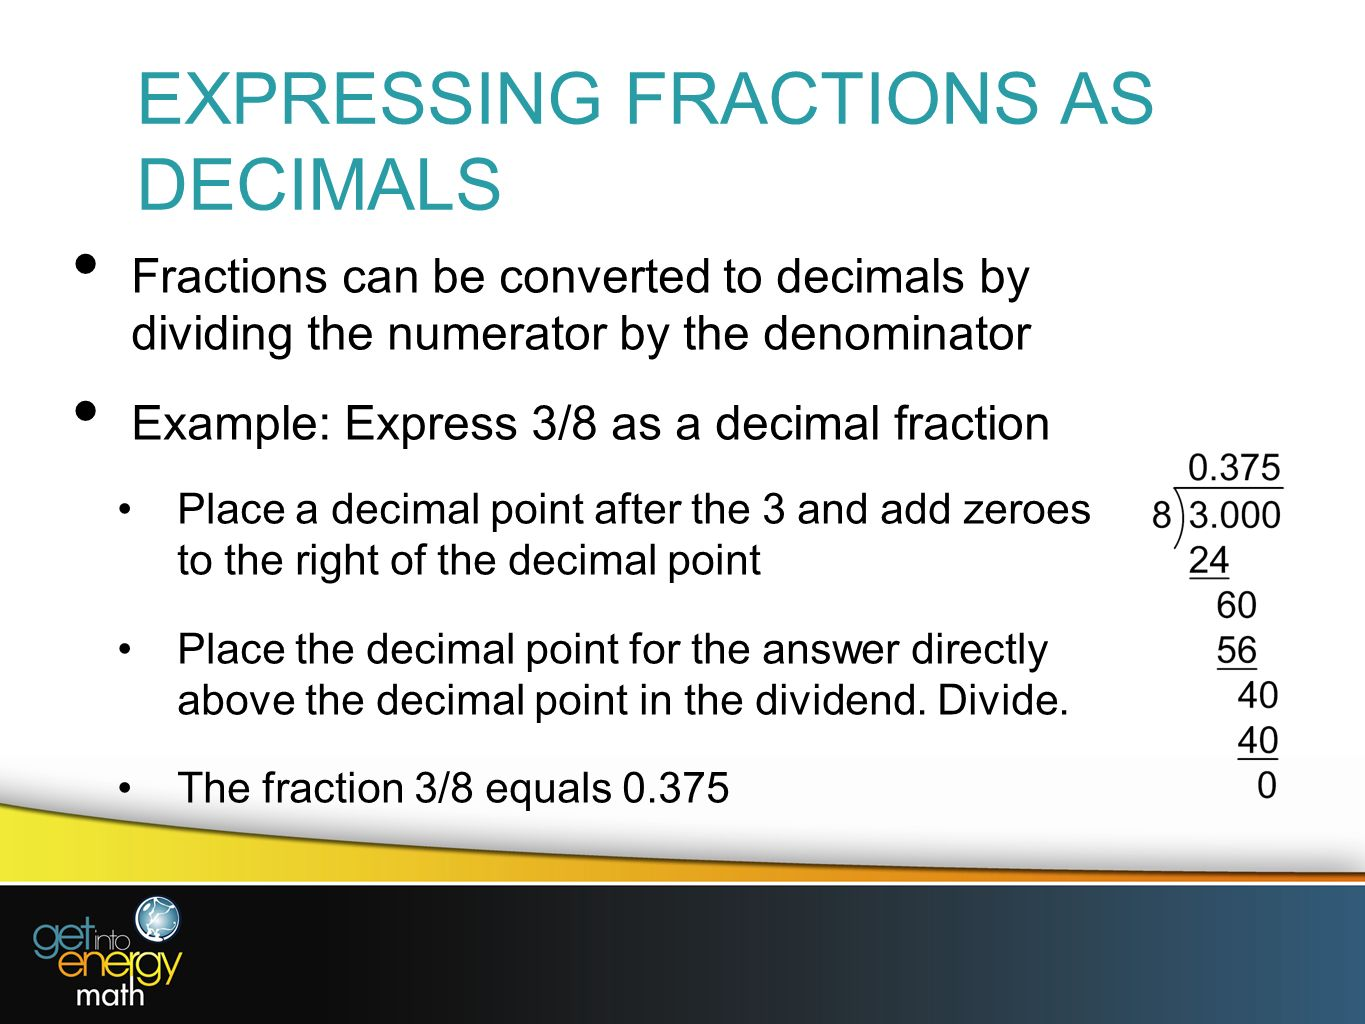 Worksheet How To Express Fractions As Decimals presentation 6 decimal fractions a expressing decimals as to change fraction use the number as